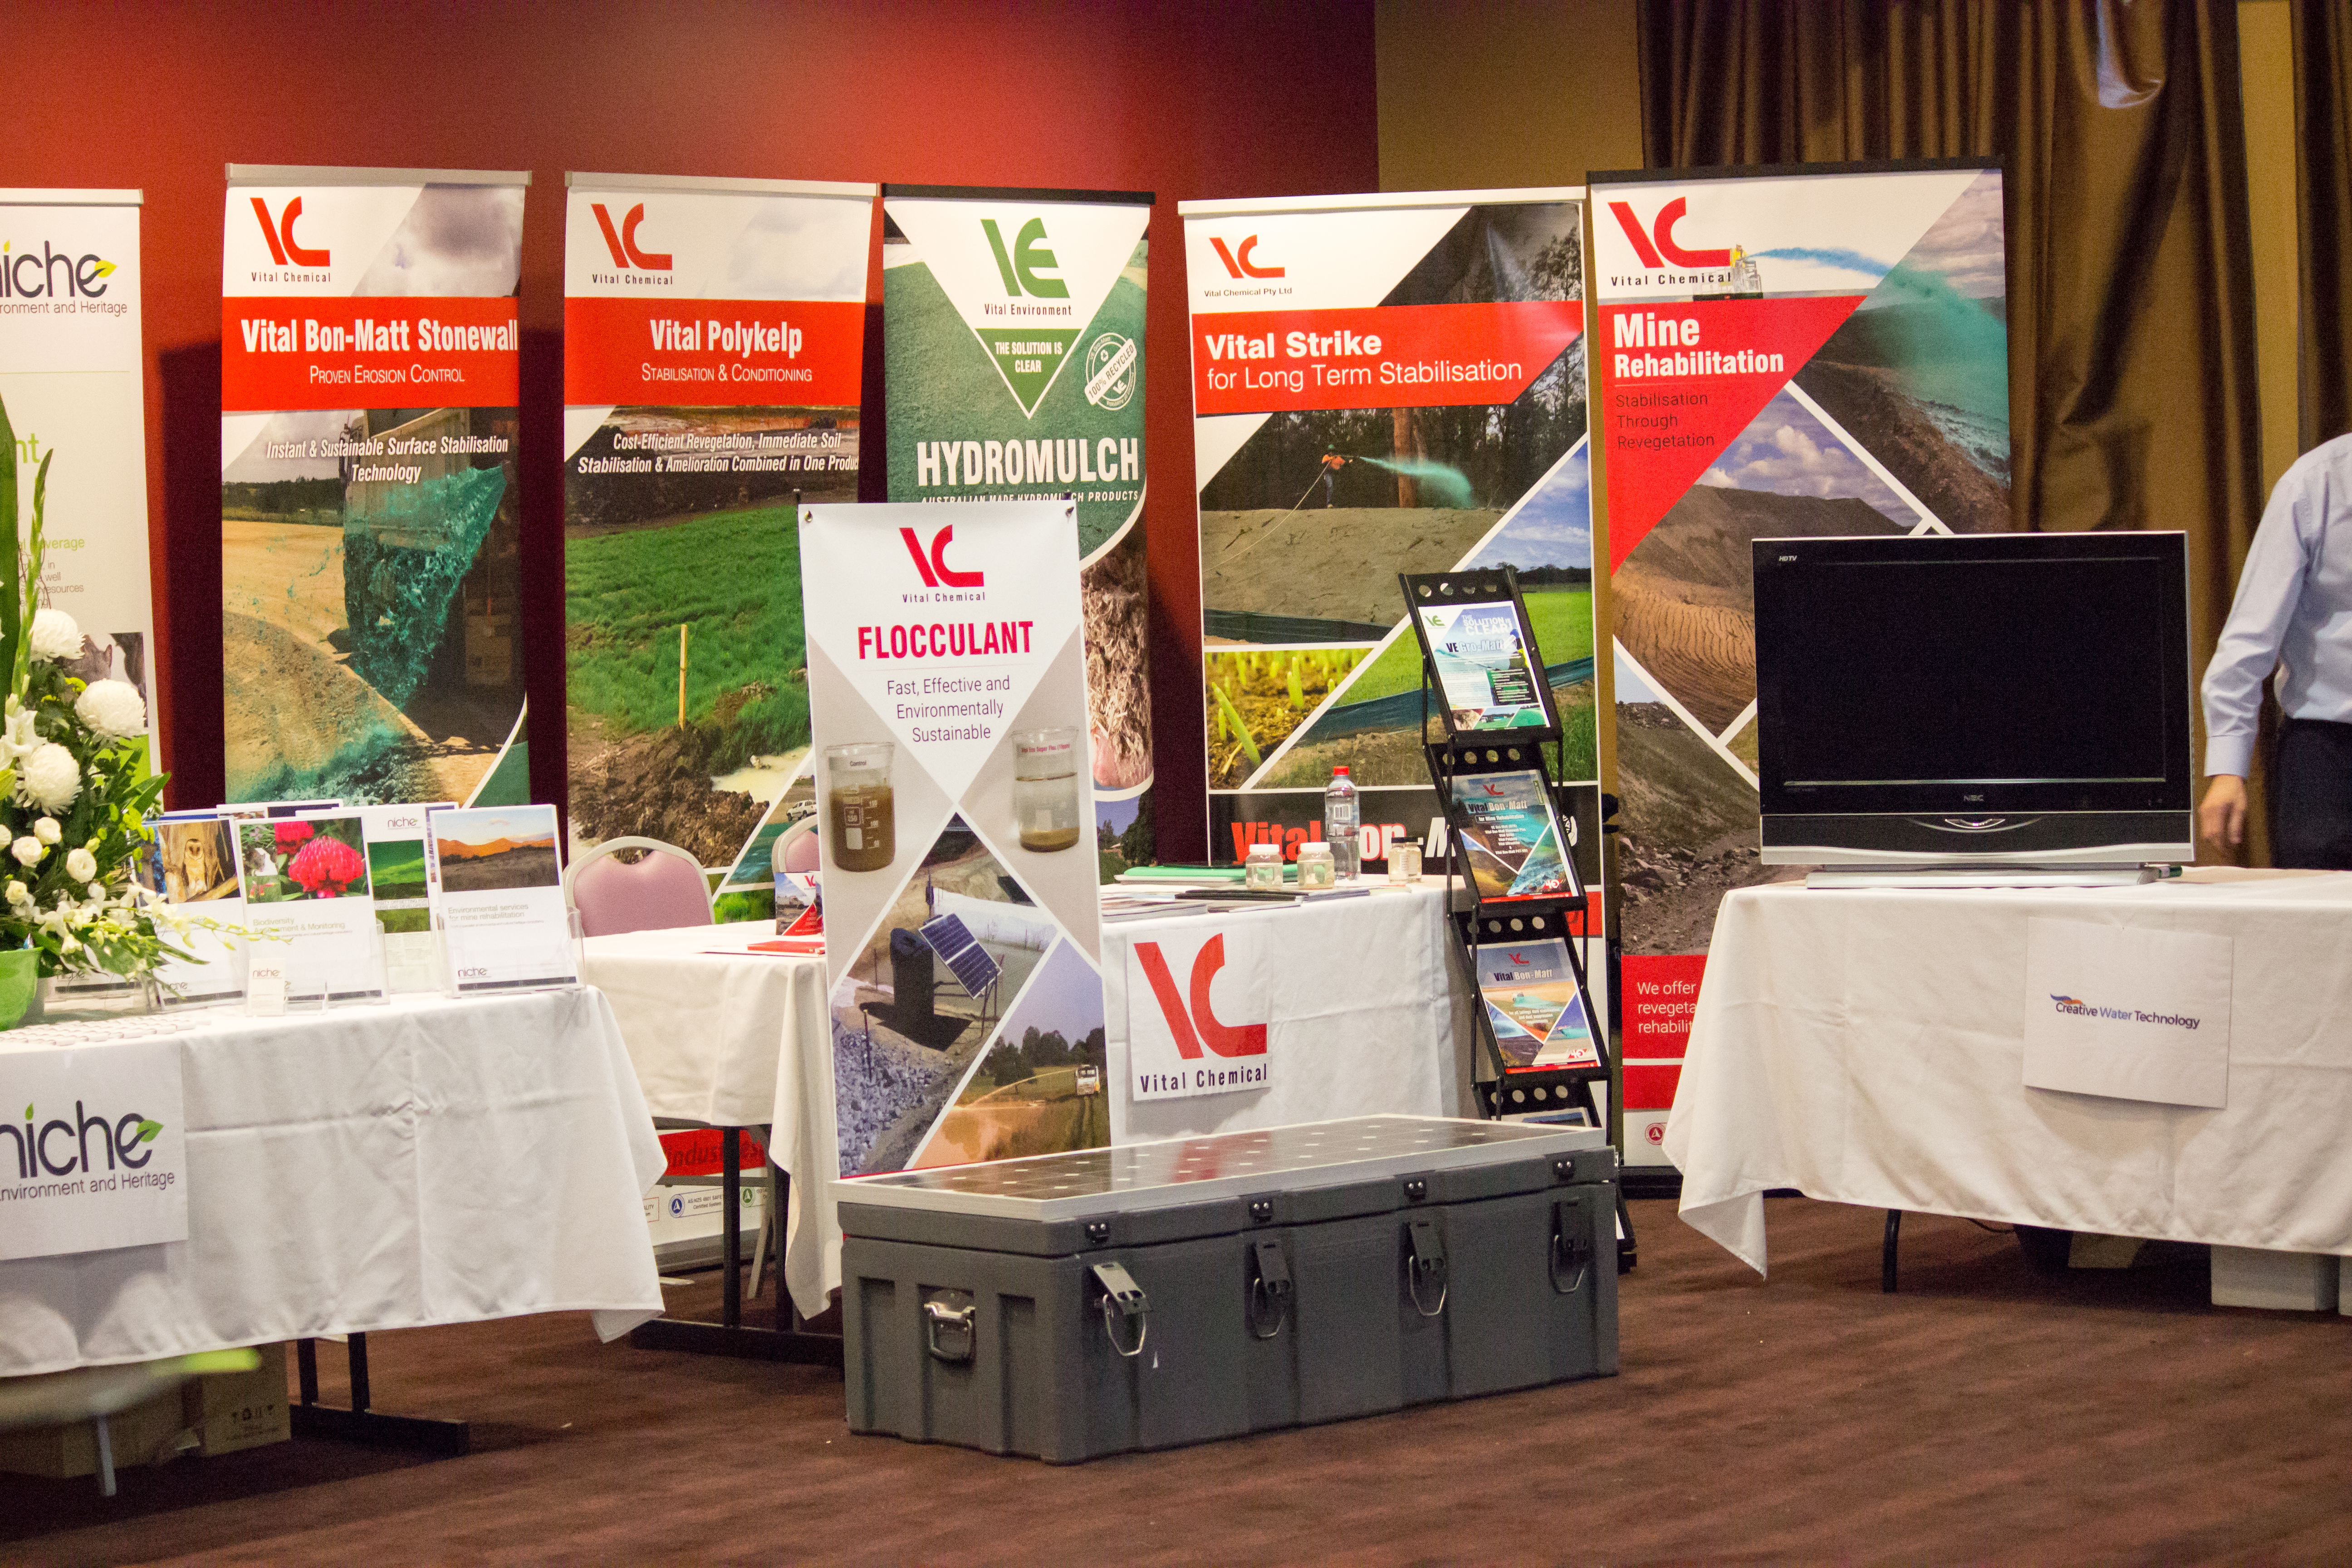 Exhibitor Vital Industries also sponsored the Conference Dinner in 2017